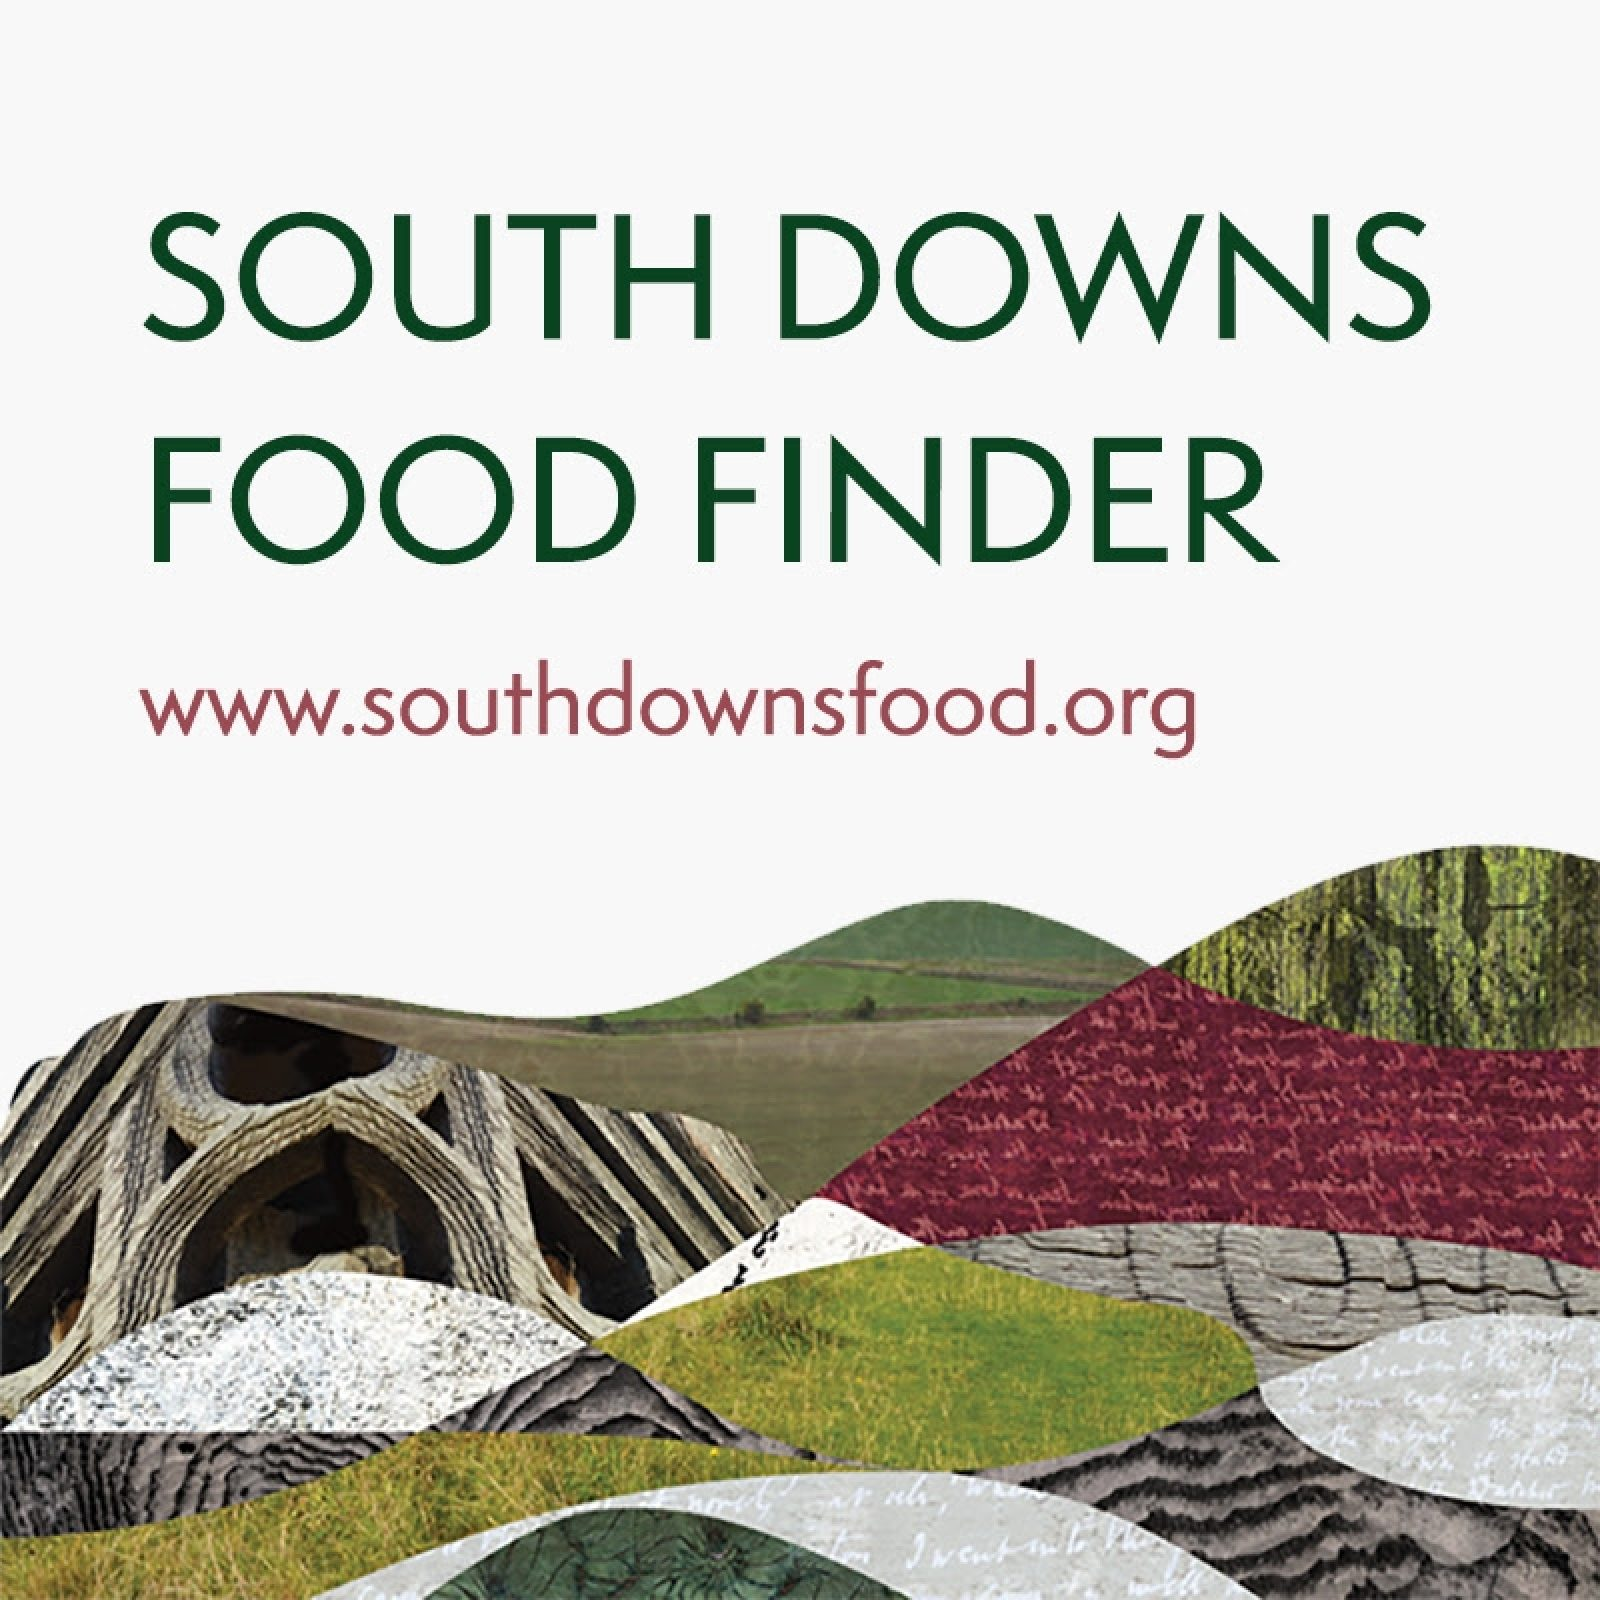 Southdowns Food Nd Drink Portal